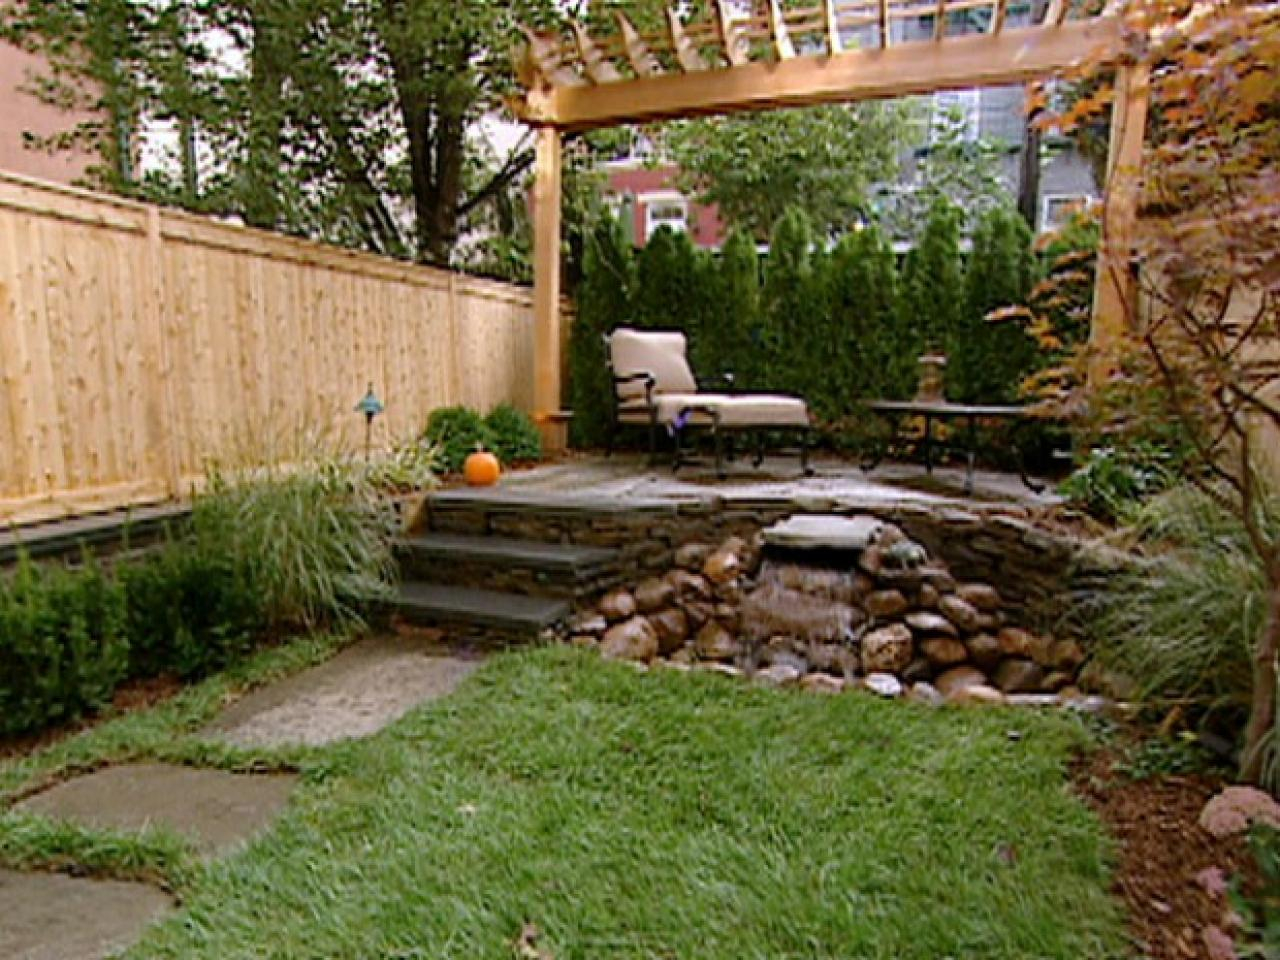 New Landscaping Ideas For Small Yards Outdoor Design York House within Small Backyard Ideas